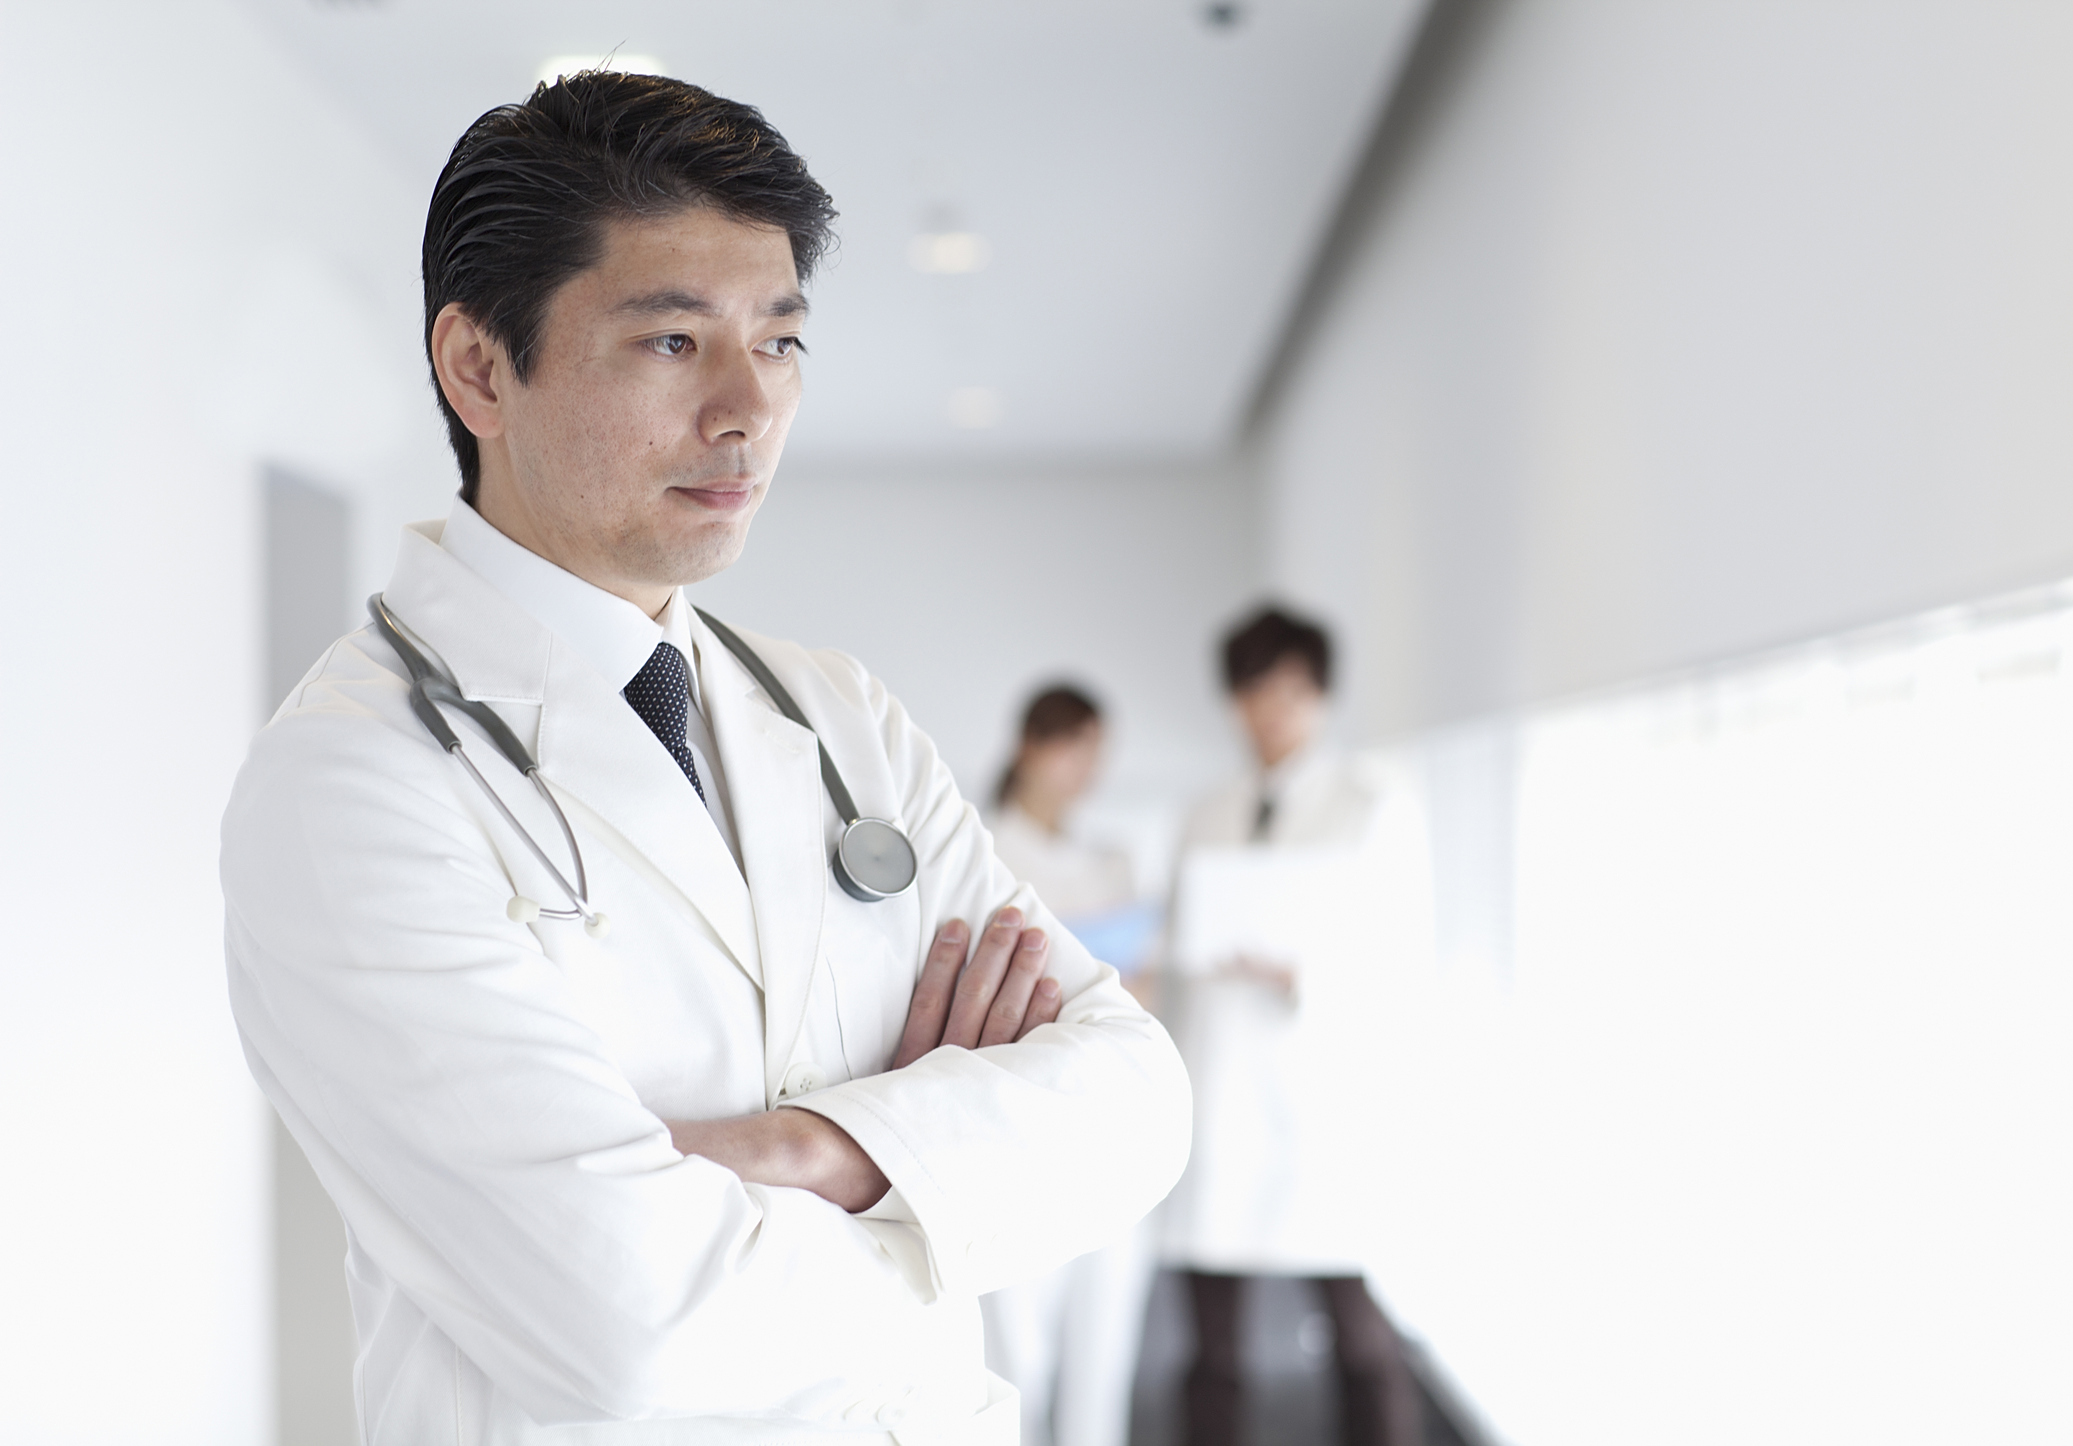 careers that could lead to medical school medical school 7 careers that could lead to medical school medical school admissions doctor us news